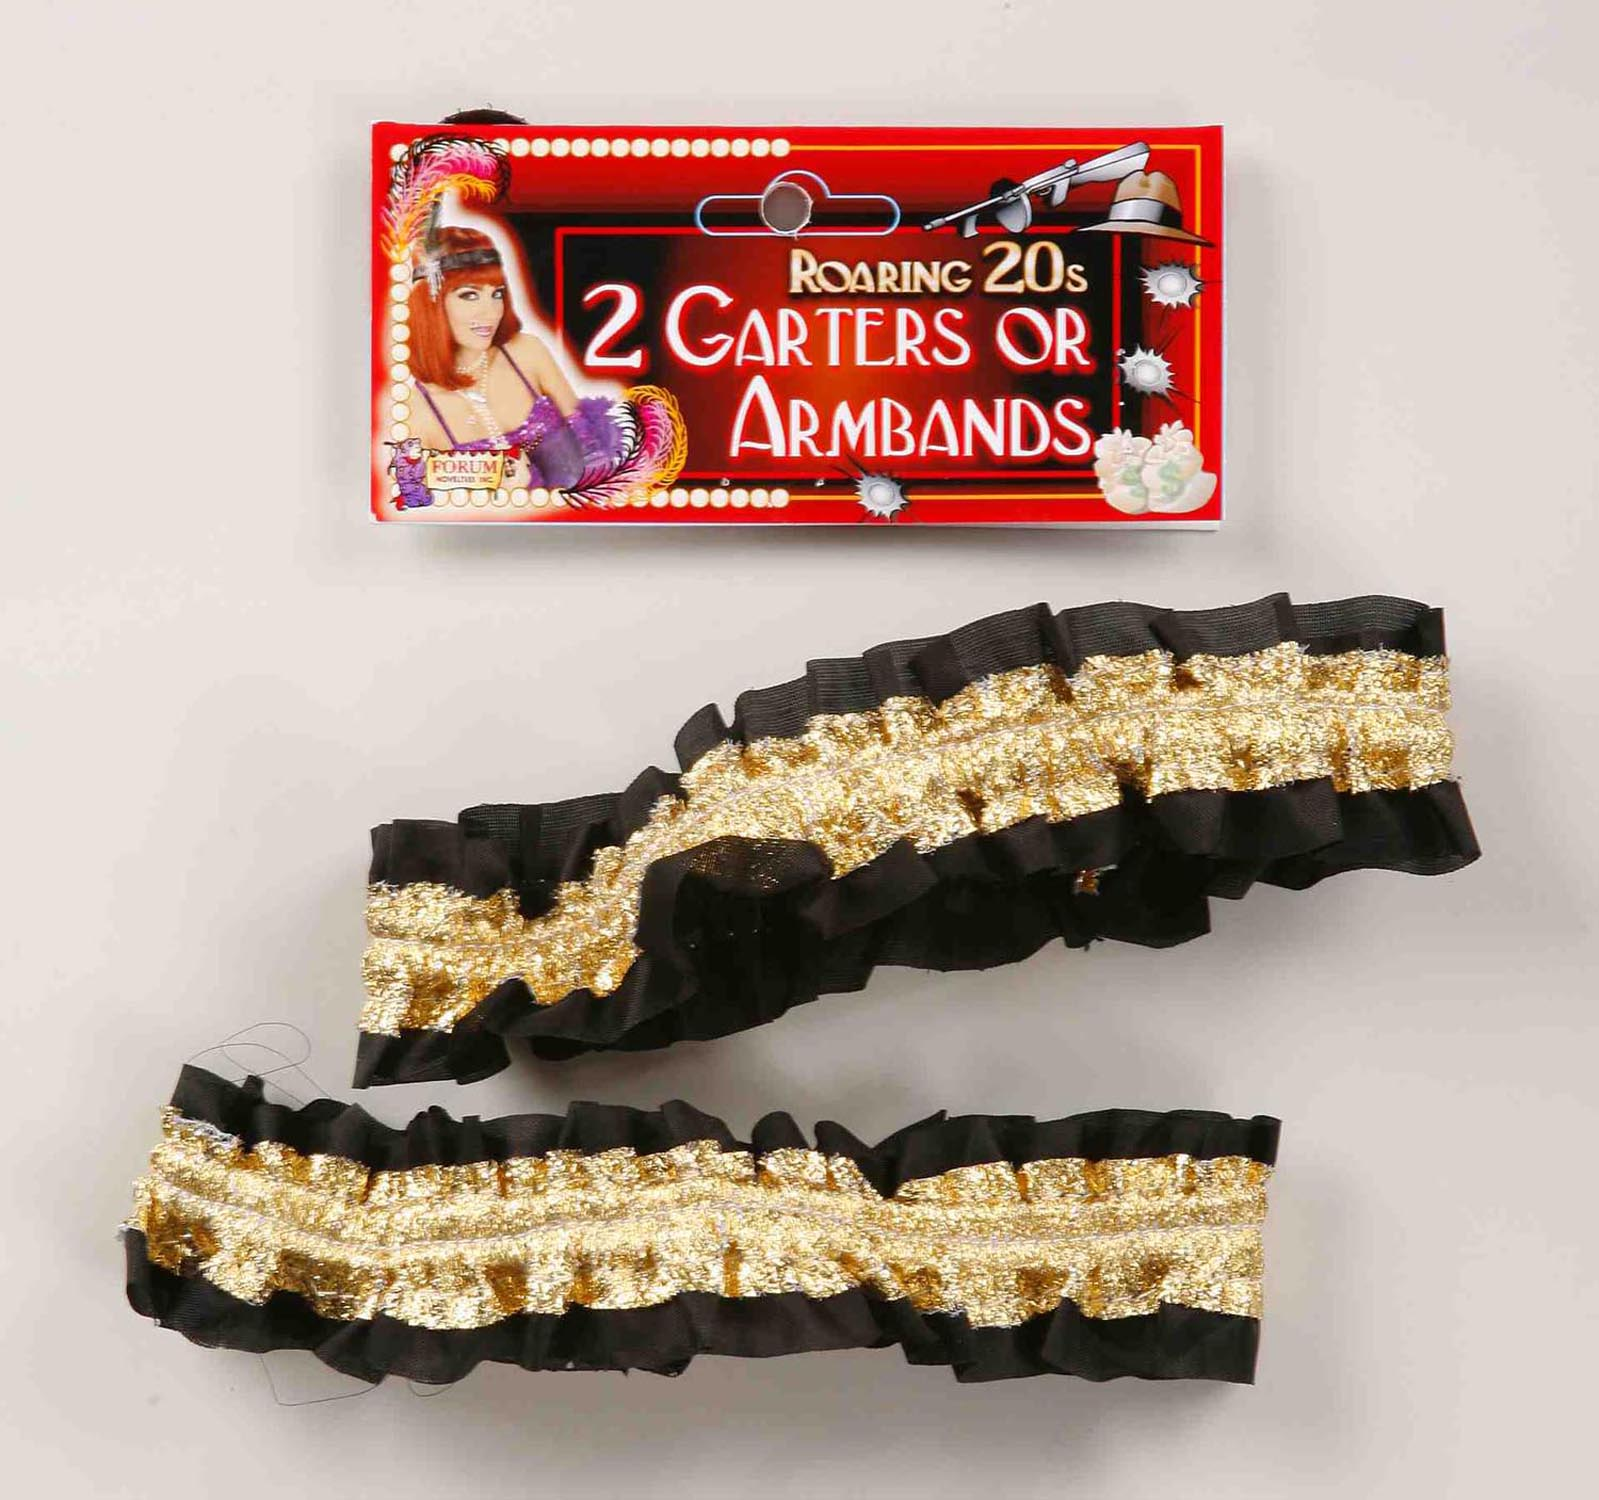 Roaring 20's Shiny Gold And Black Costume Garters Or Armbands